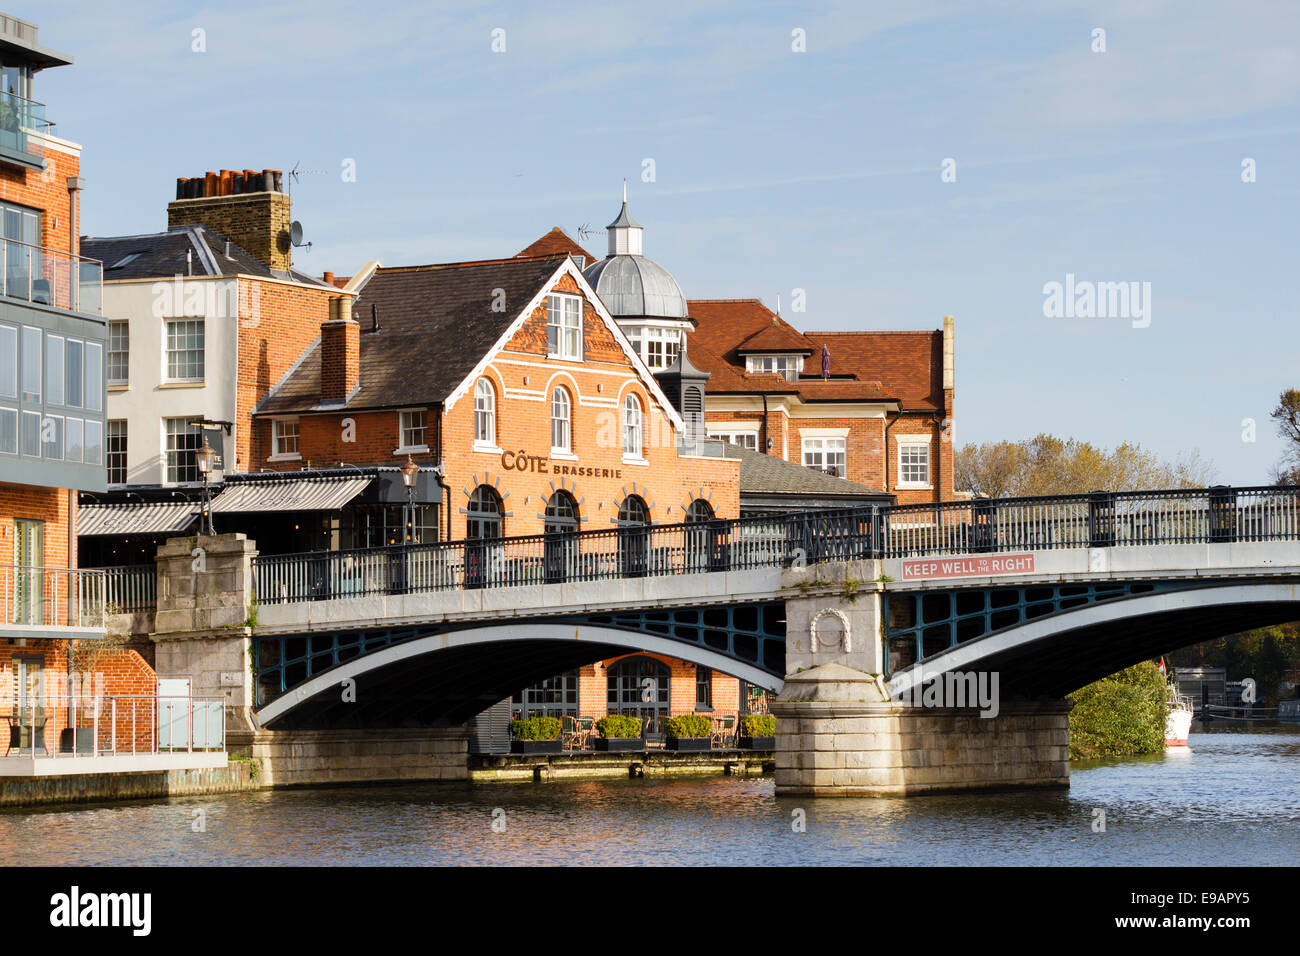 River Thames at Windsor/Eton with Cote Brasserie, Berkshire,England,UK - Stock Image